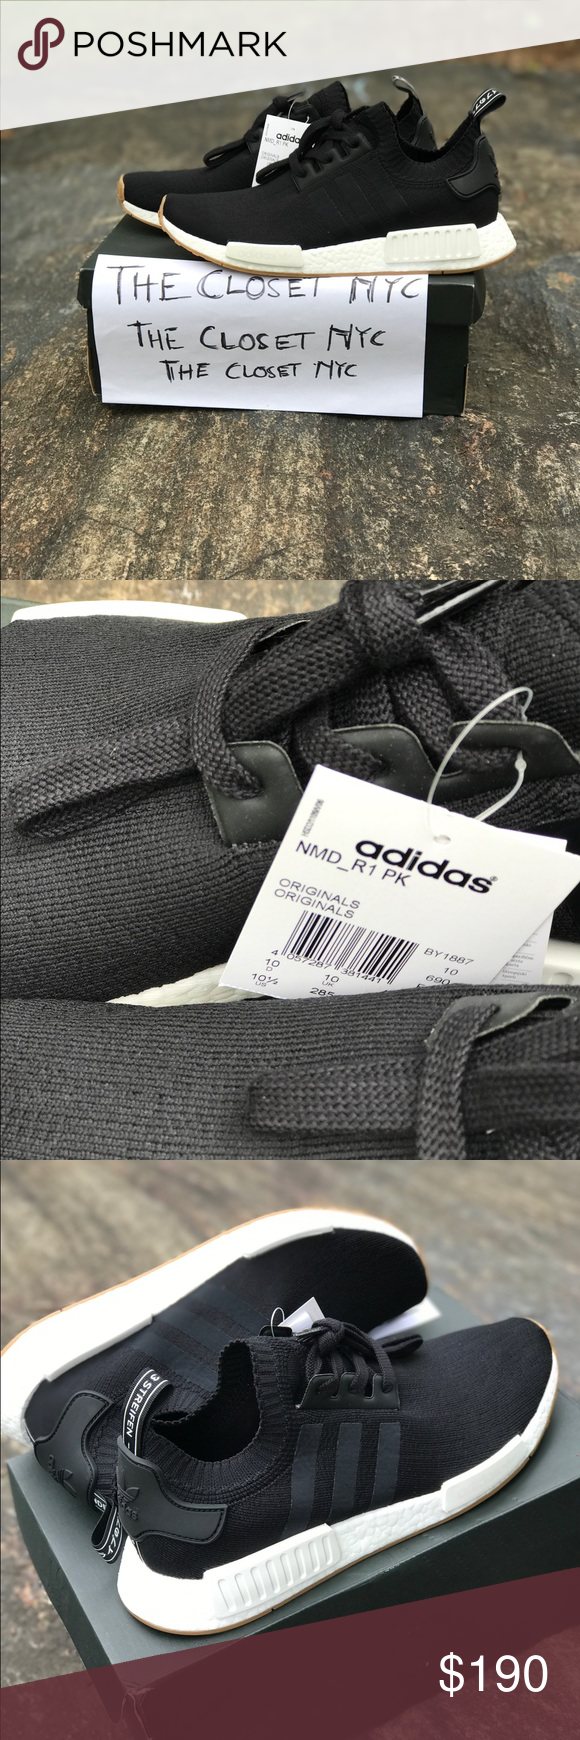 ifntfashion : [ HOYA ] Adidas NMD R1 PK Sneakers $220 https:/t.co